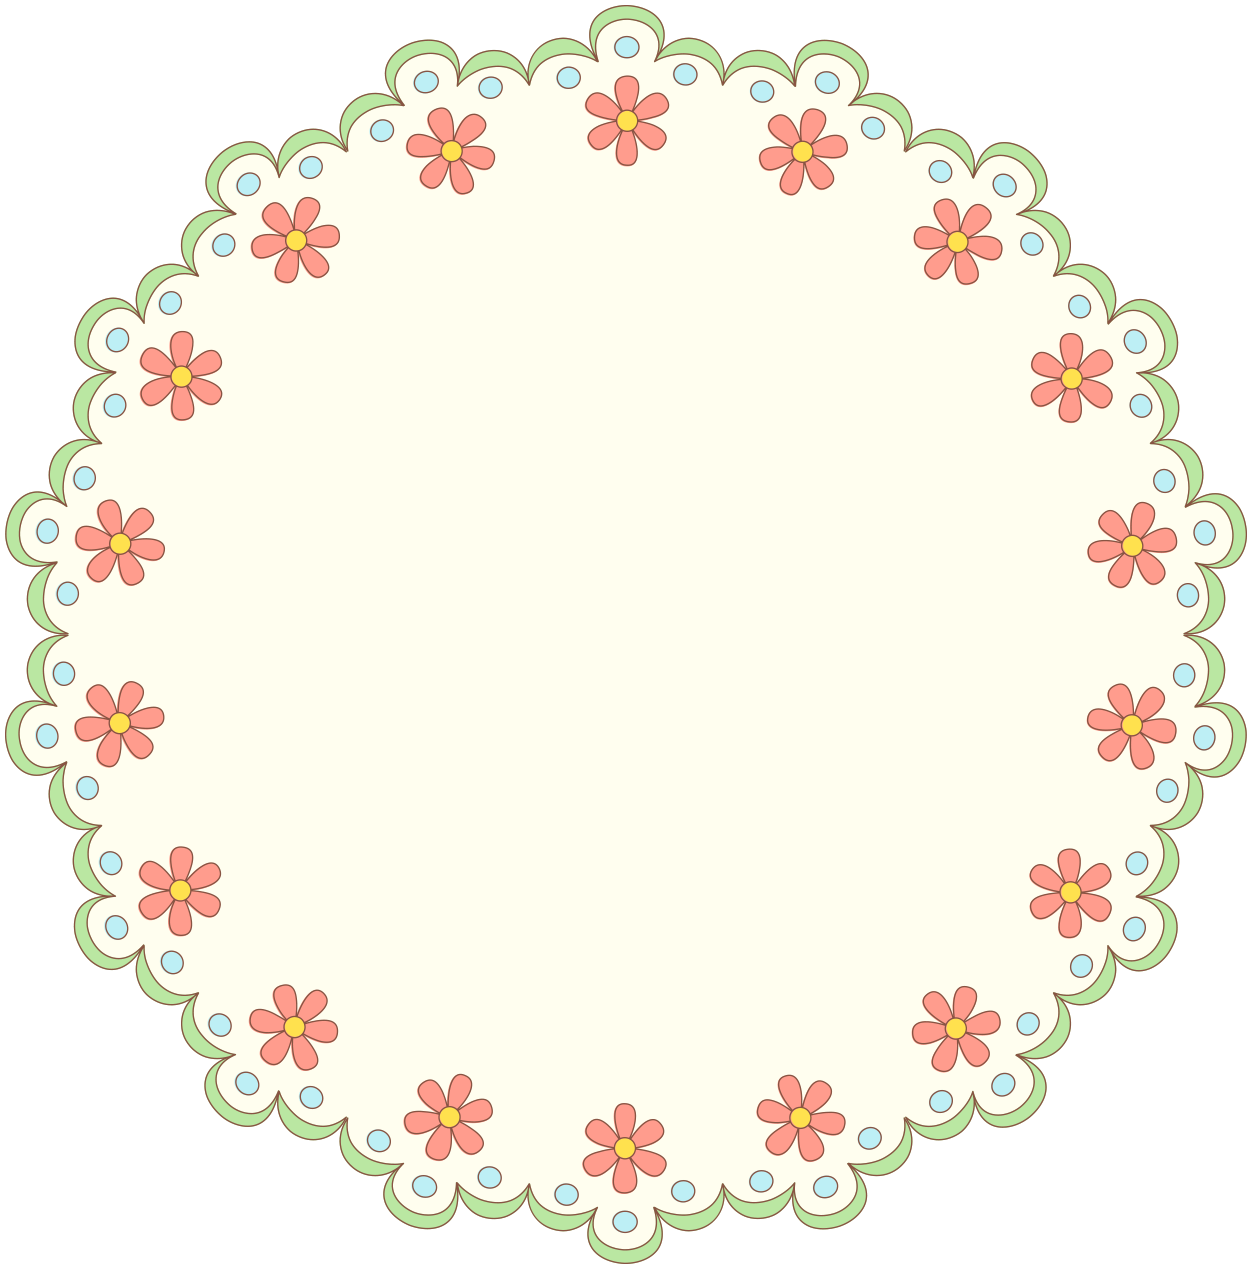 Free designer resources adapted. Clipart heart doily